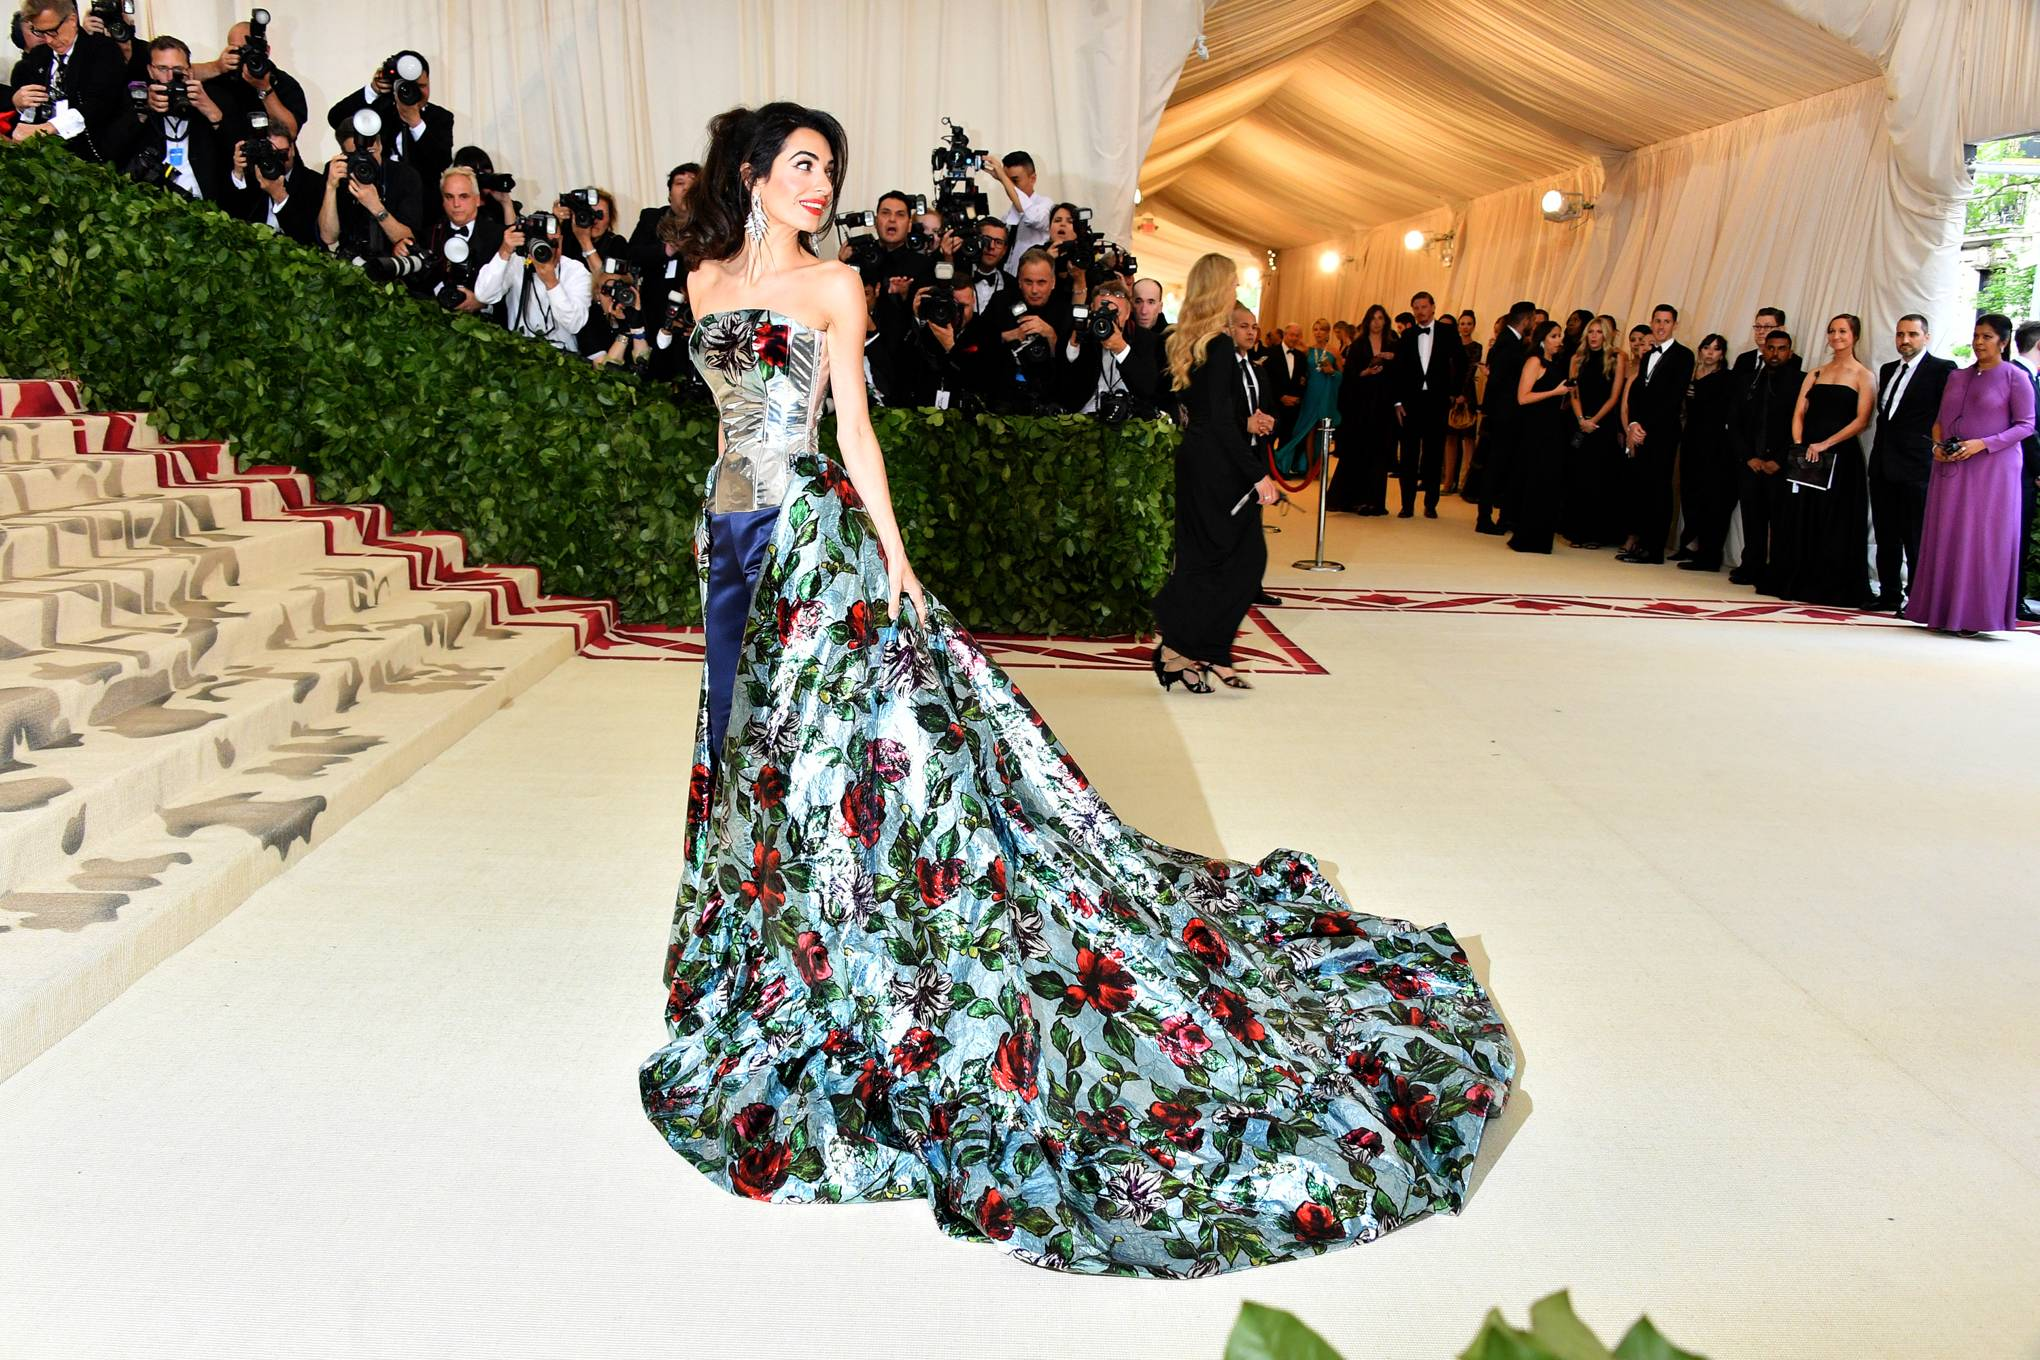 The Best Dressed List: The 2019 Met Gala recommend